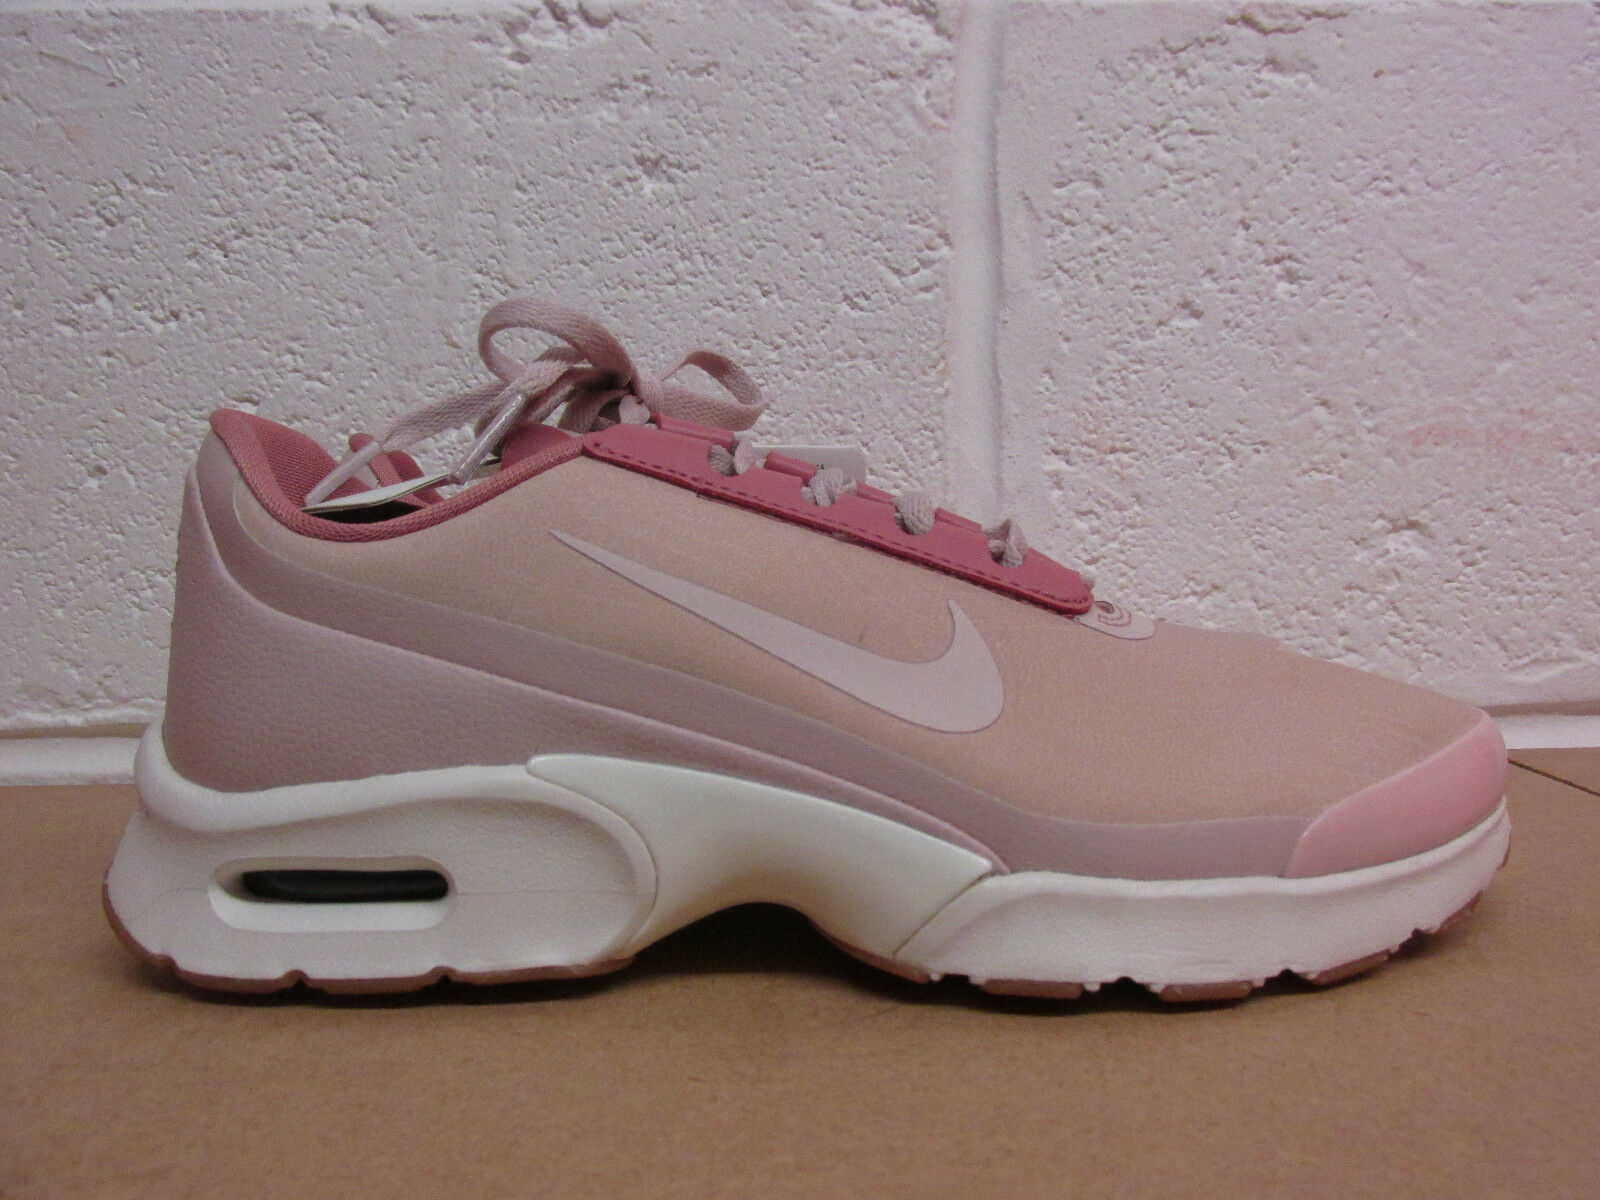 Nike air max trainers jewell 896195 601 womens trainers max sneakers shoes SAMPLE 487eaa